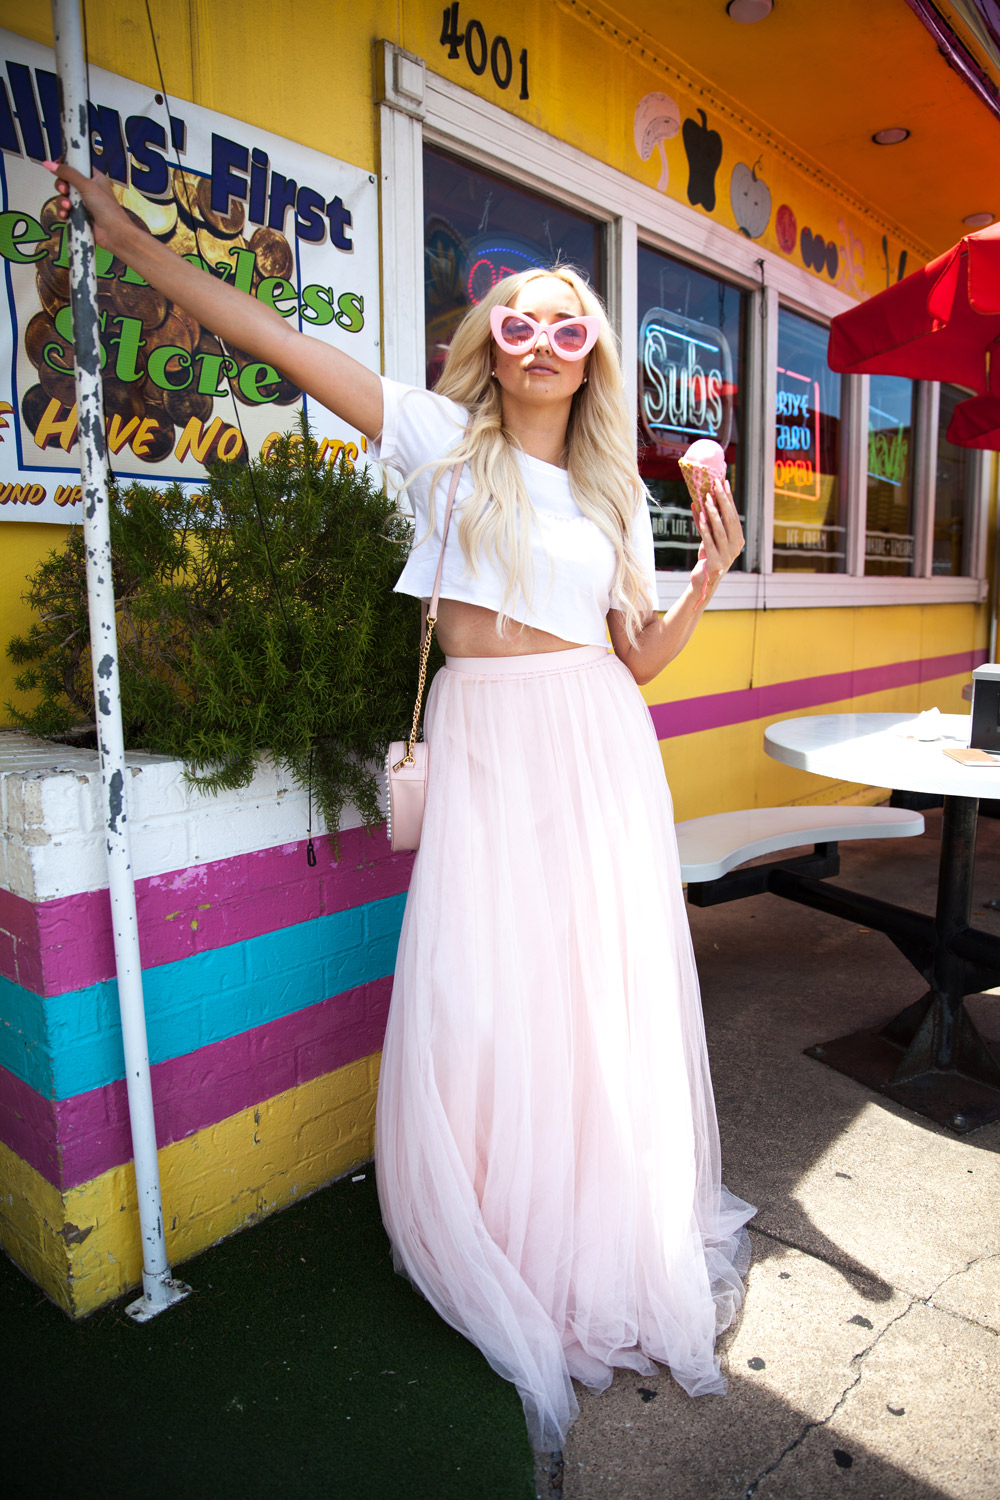 Bridesmaid wears tulle skirt again outside cute ice cream shop. Dresses down pink tulle skirt with white sneakers, cropped tee , and vintage inspired cat eye sunglasses.